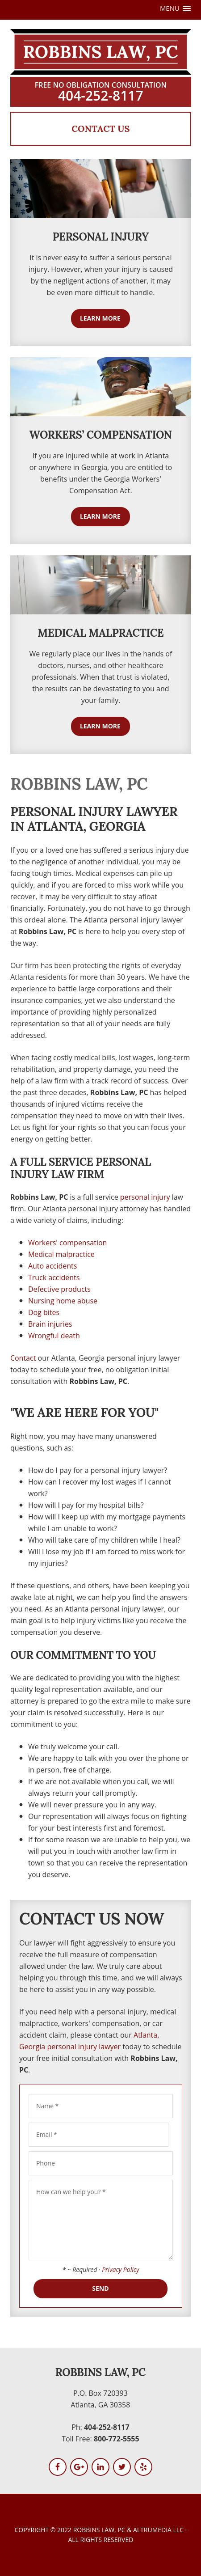 Robbins & Associates PC - Atlanta GA Lawyers